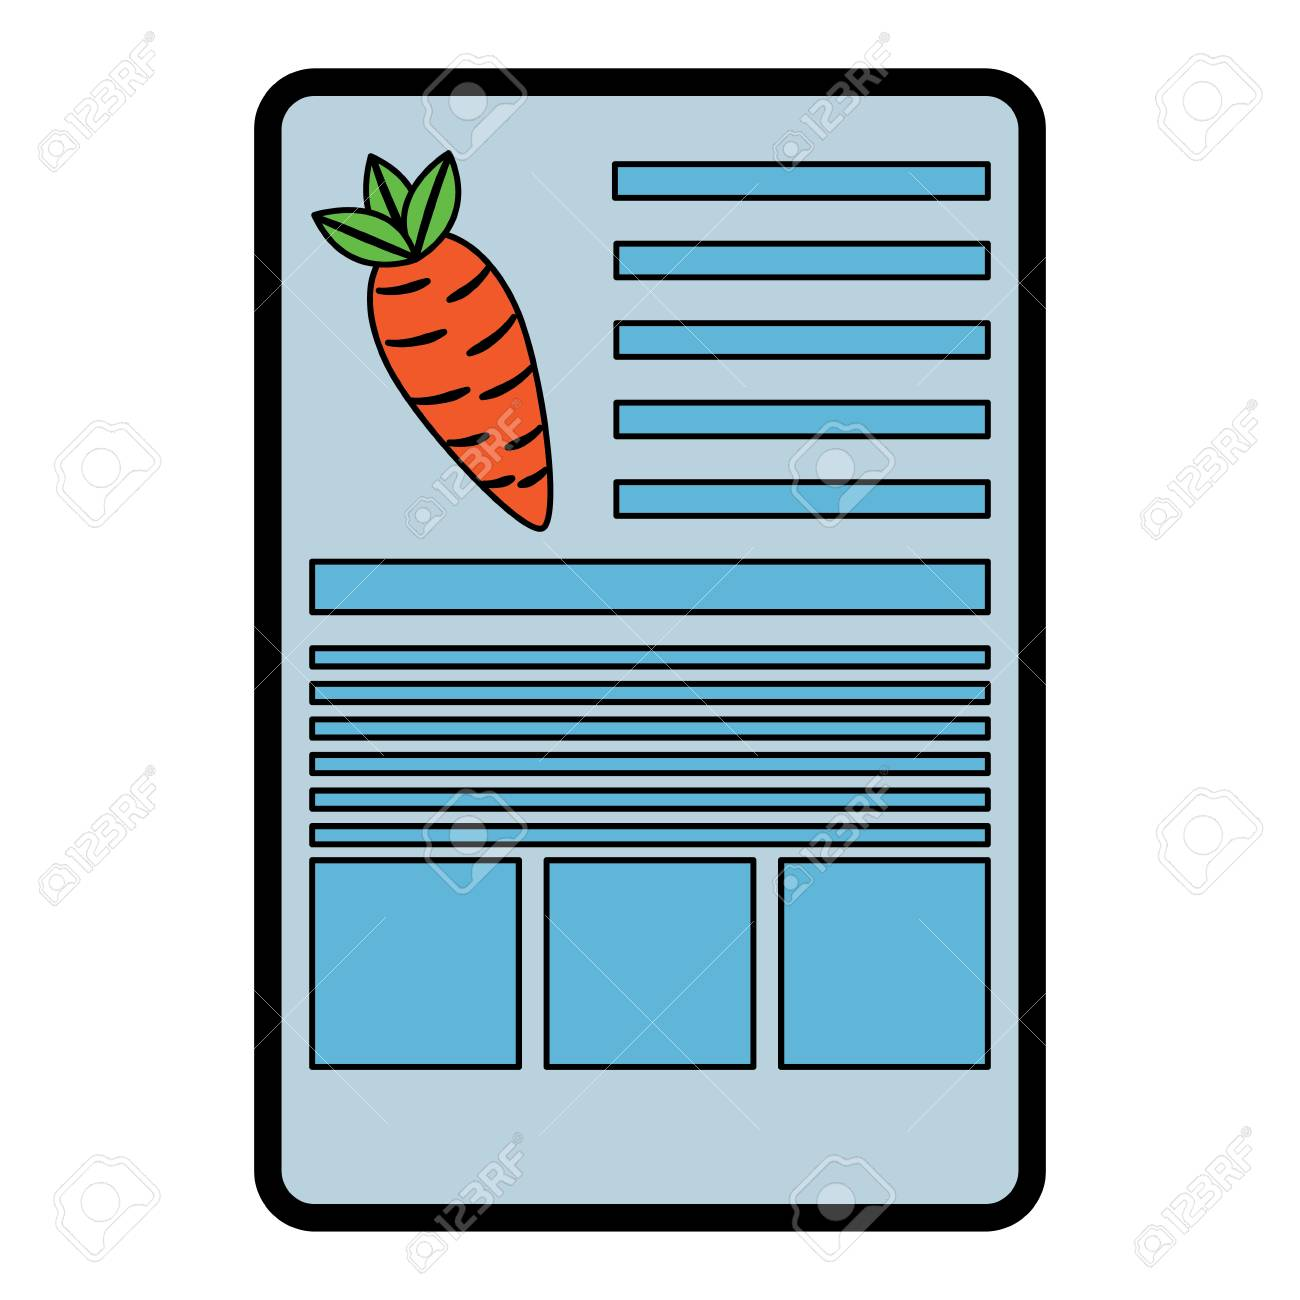 carrot nutrition facts label template vector illustration royalty